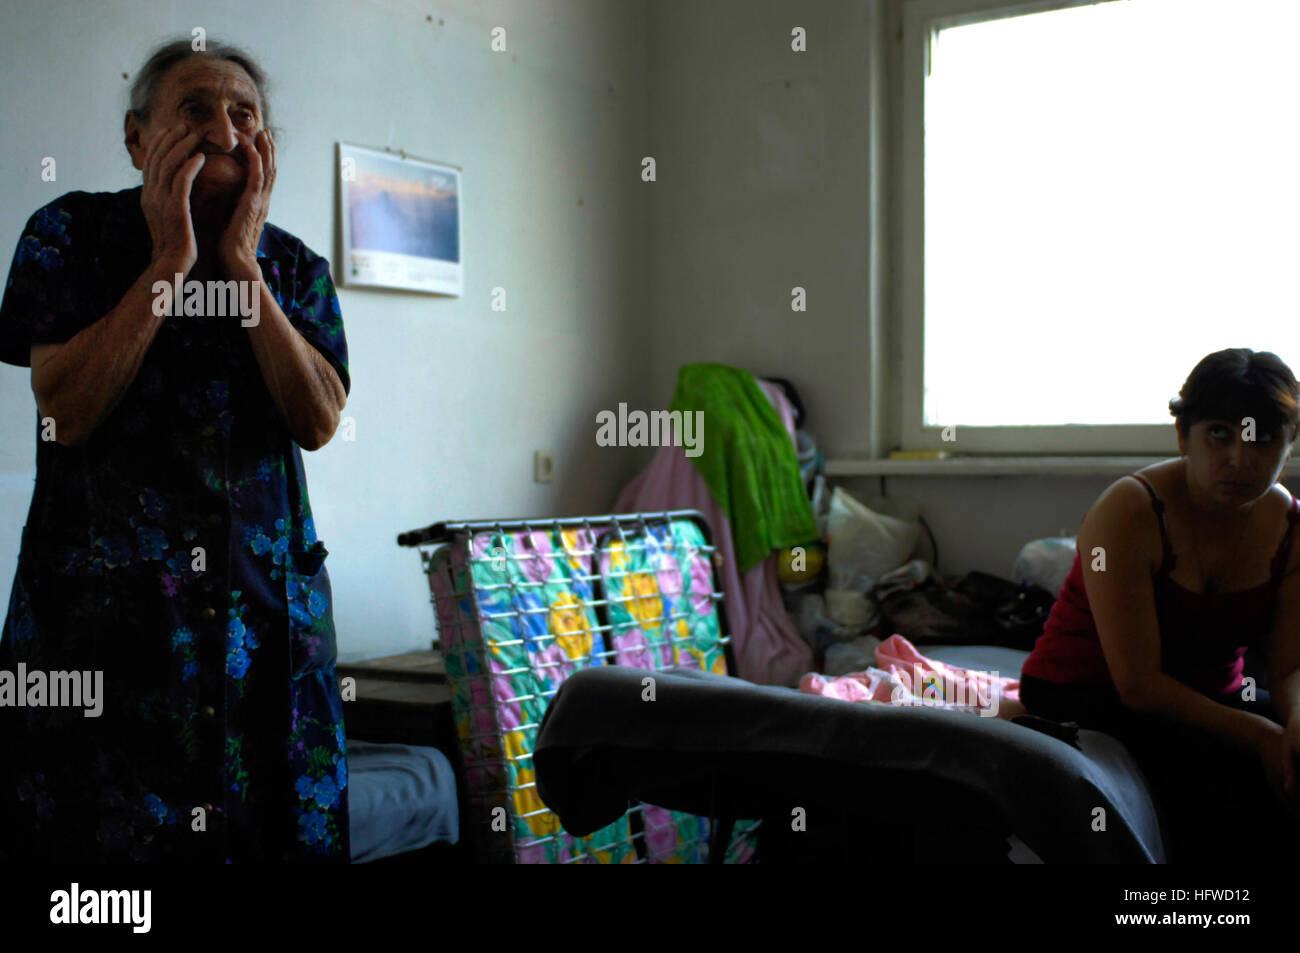 080828-F-0560B-015 TBILISI, Georgia (Aug. 28, 2008) A Georgian woman speaks about living conditions in a center - Stock Image